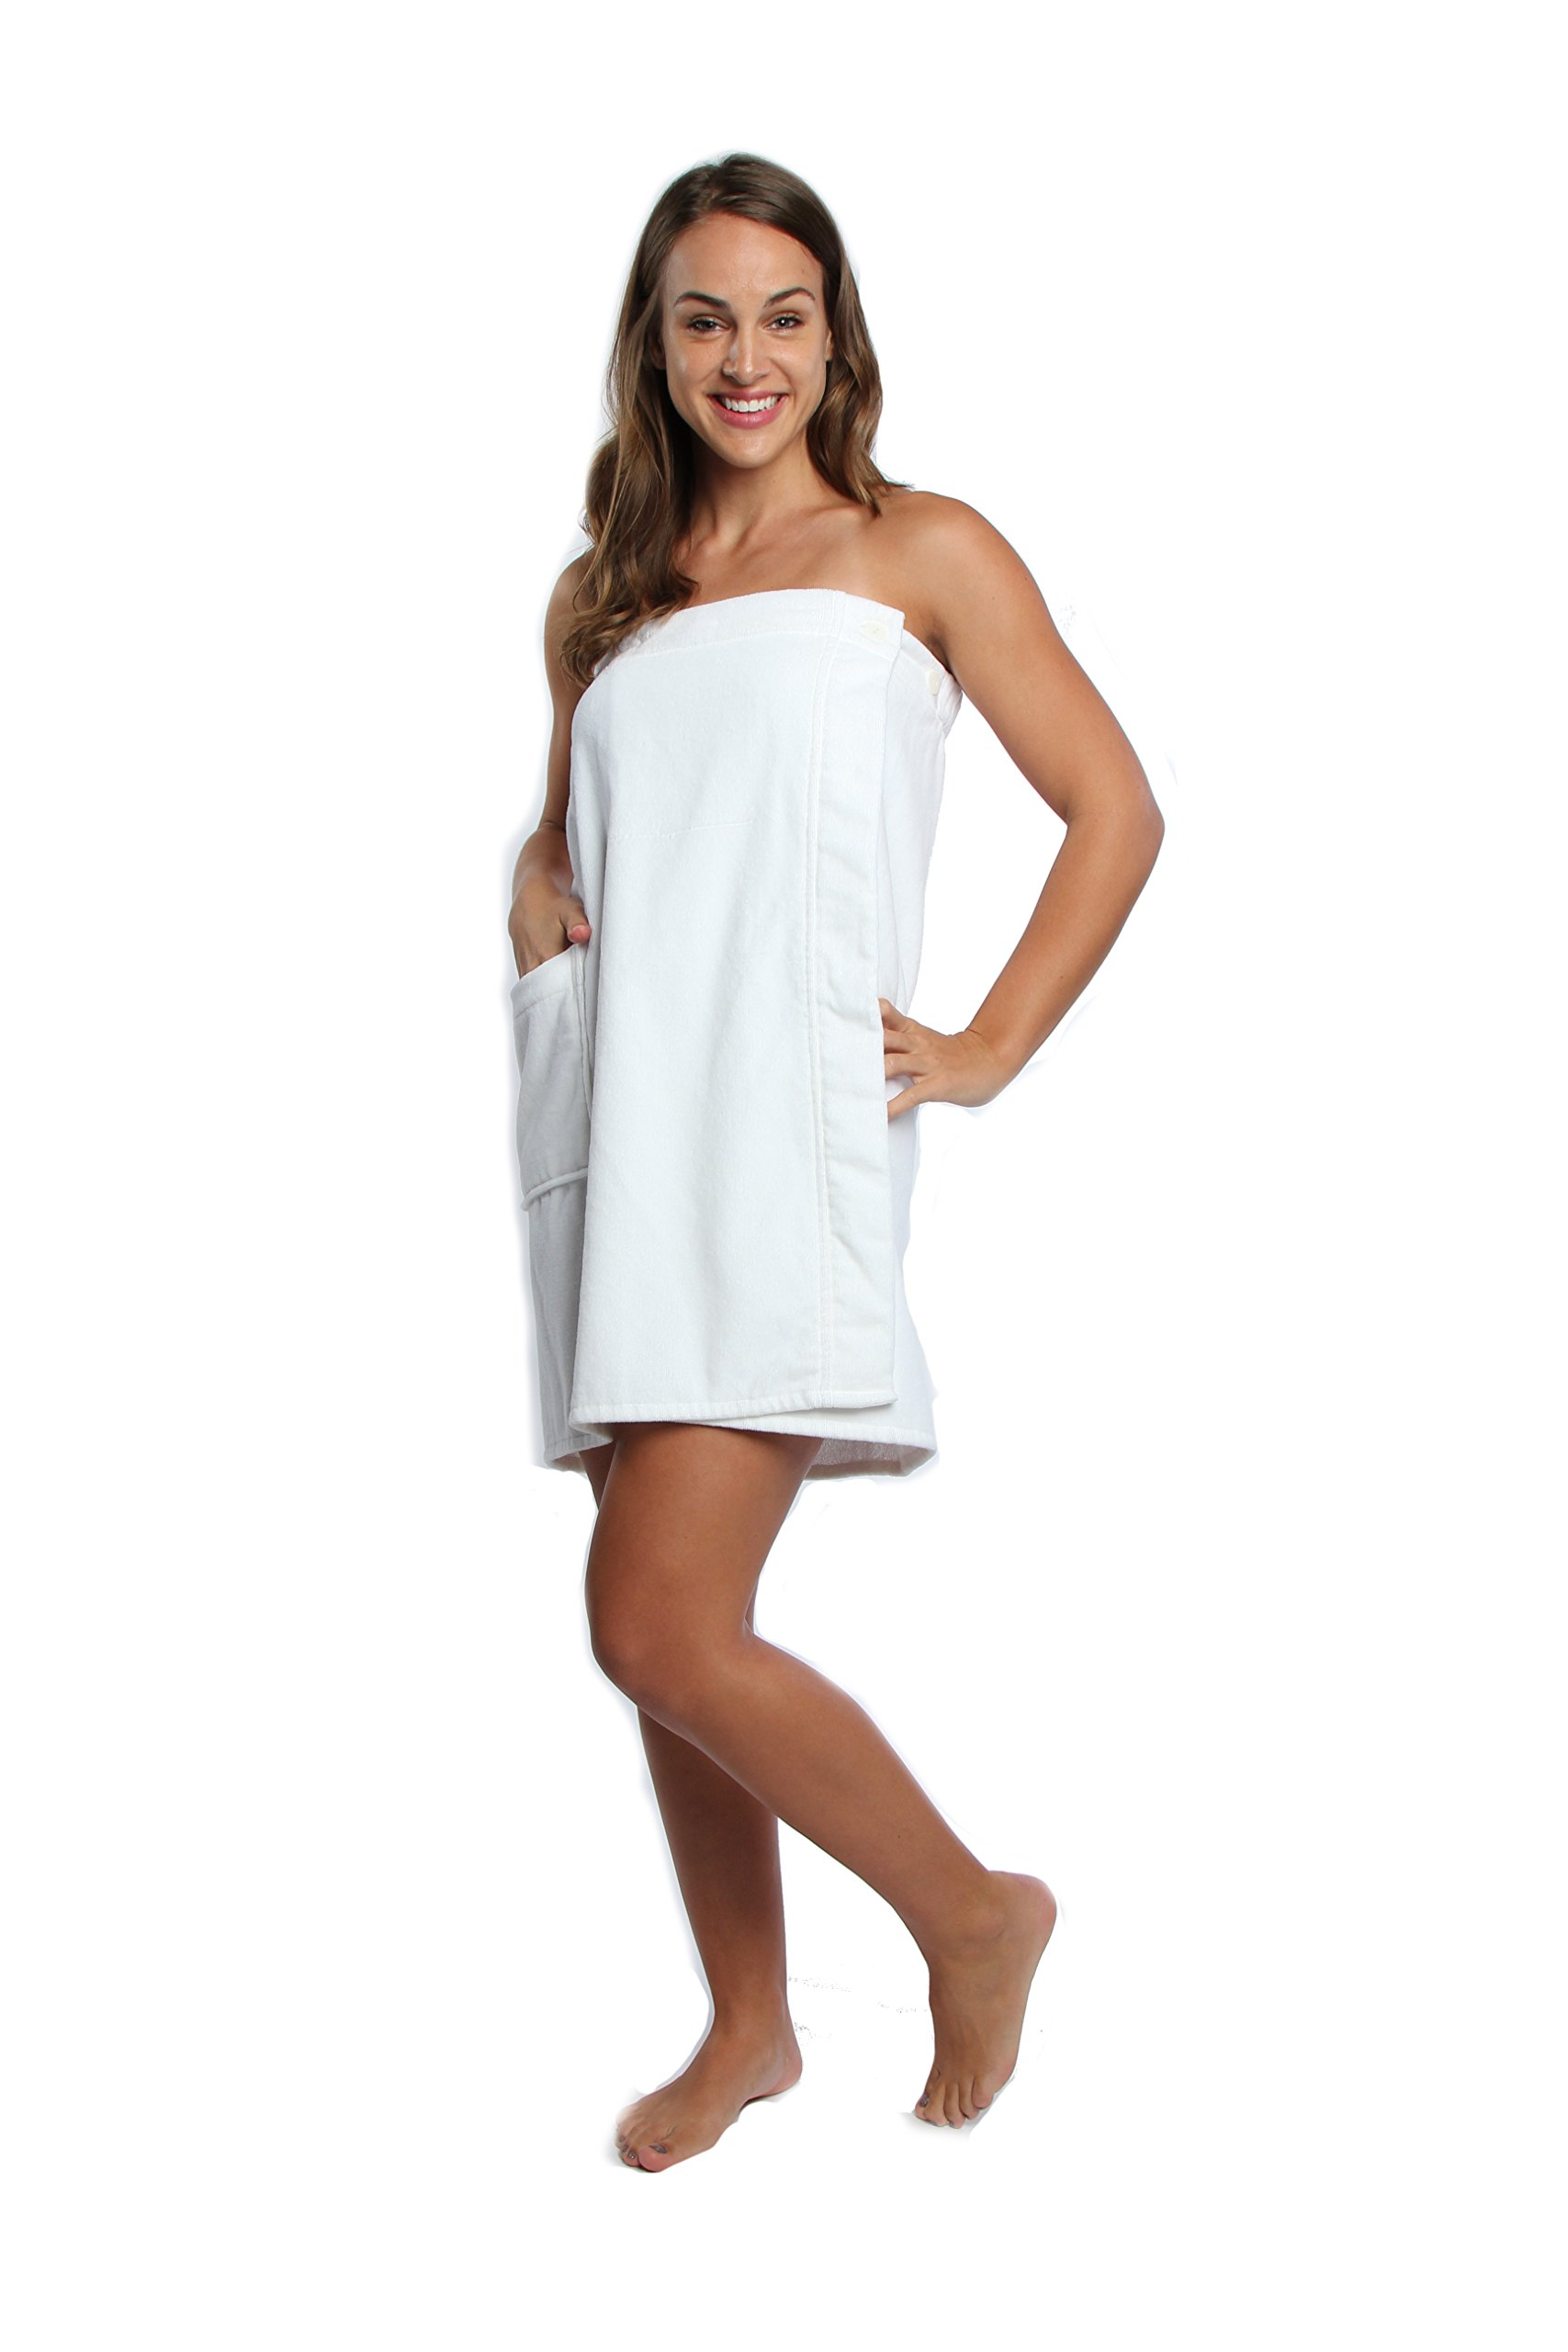 TurkishTowels Spa Towel Wrap (Large, White) by TurkishTowels